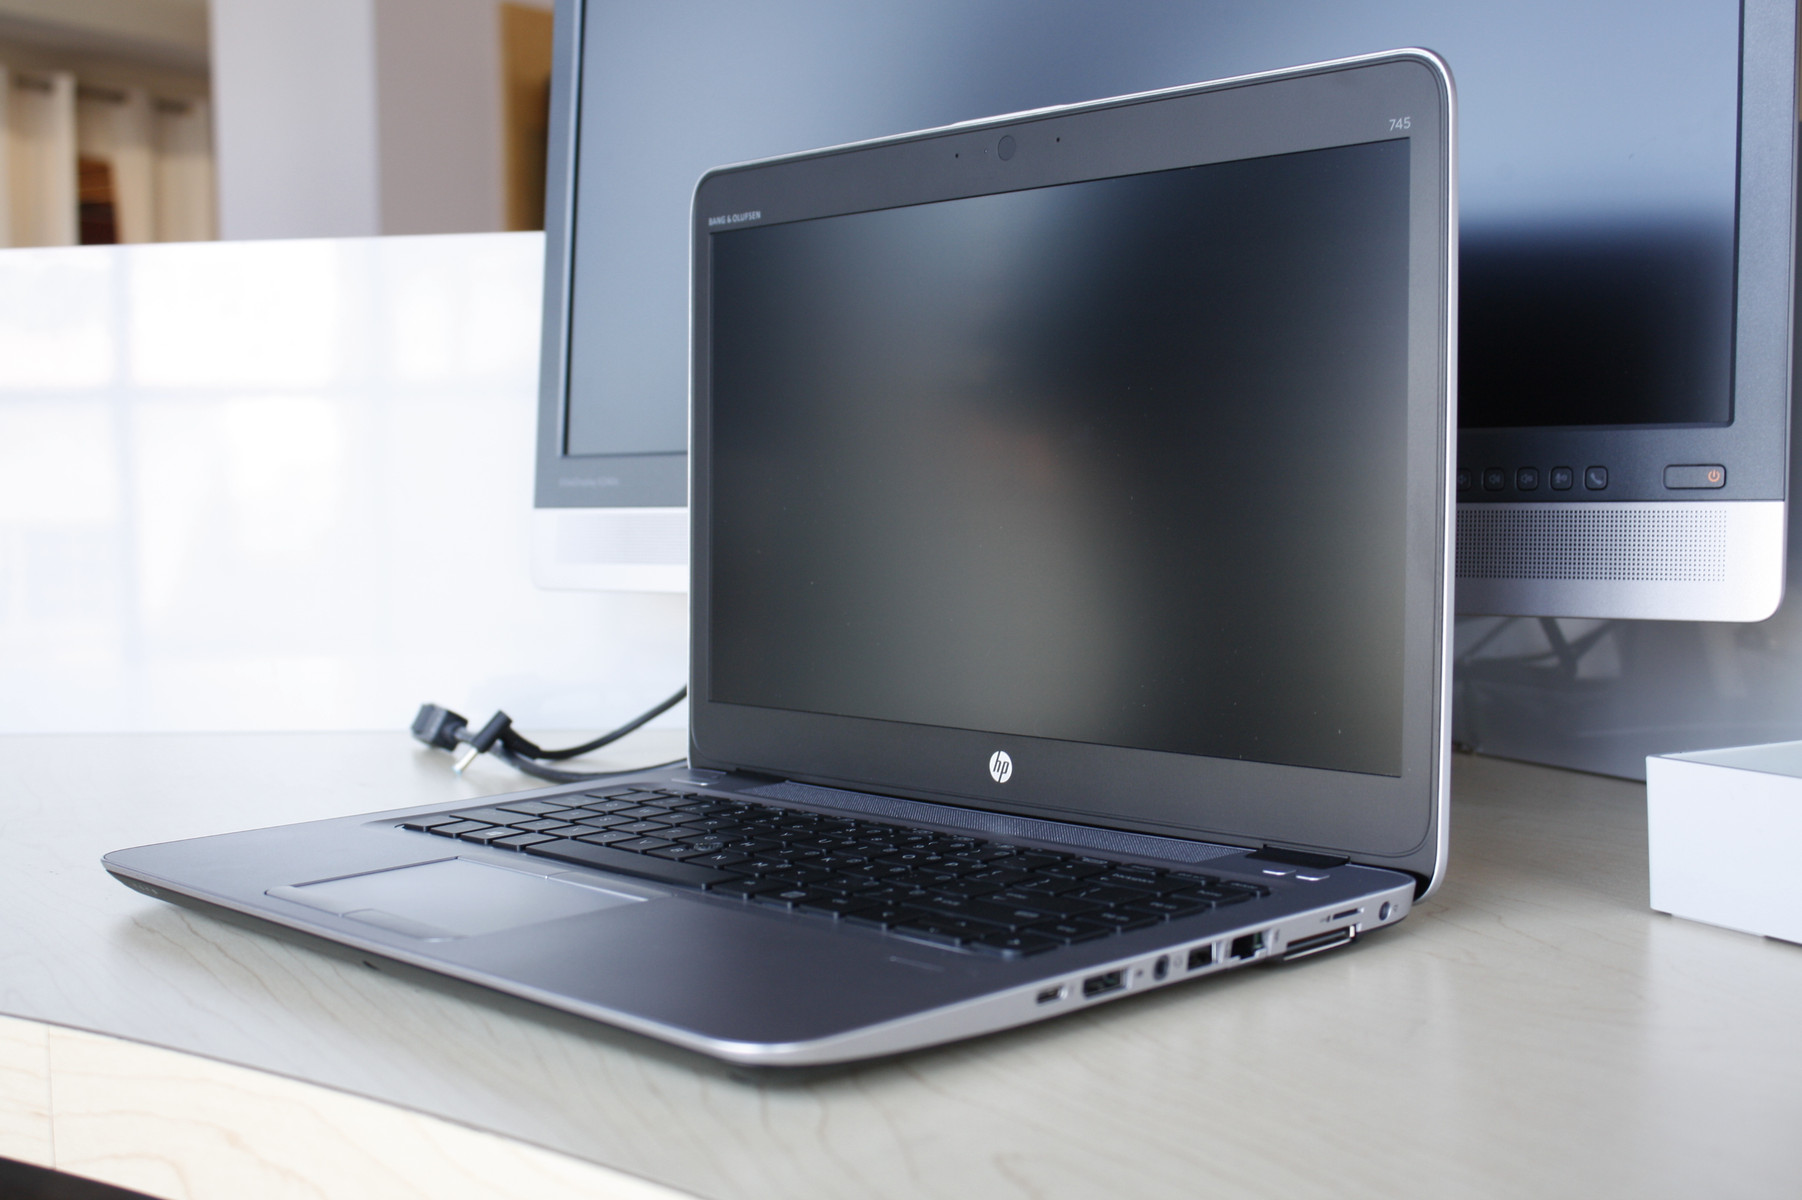 HP EliteBook 705 G3 600 01